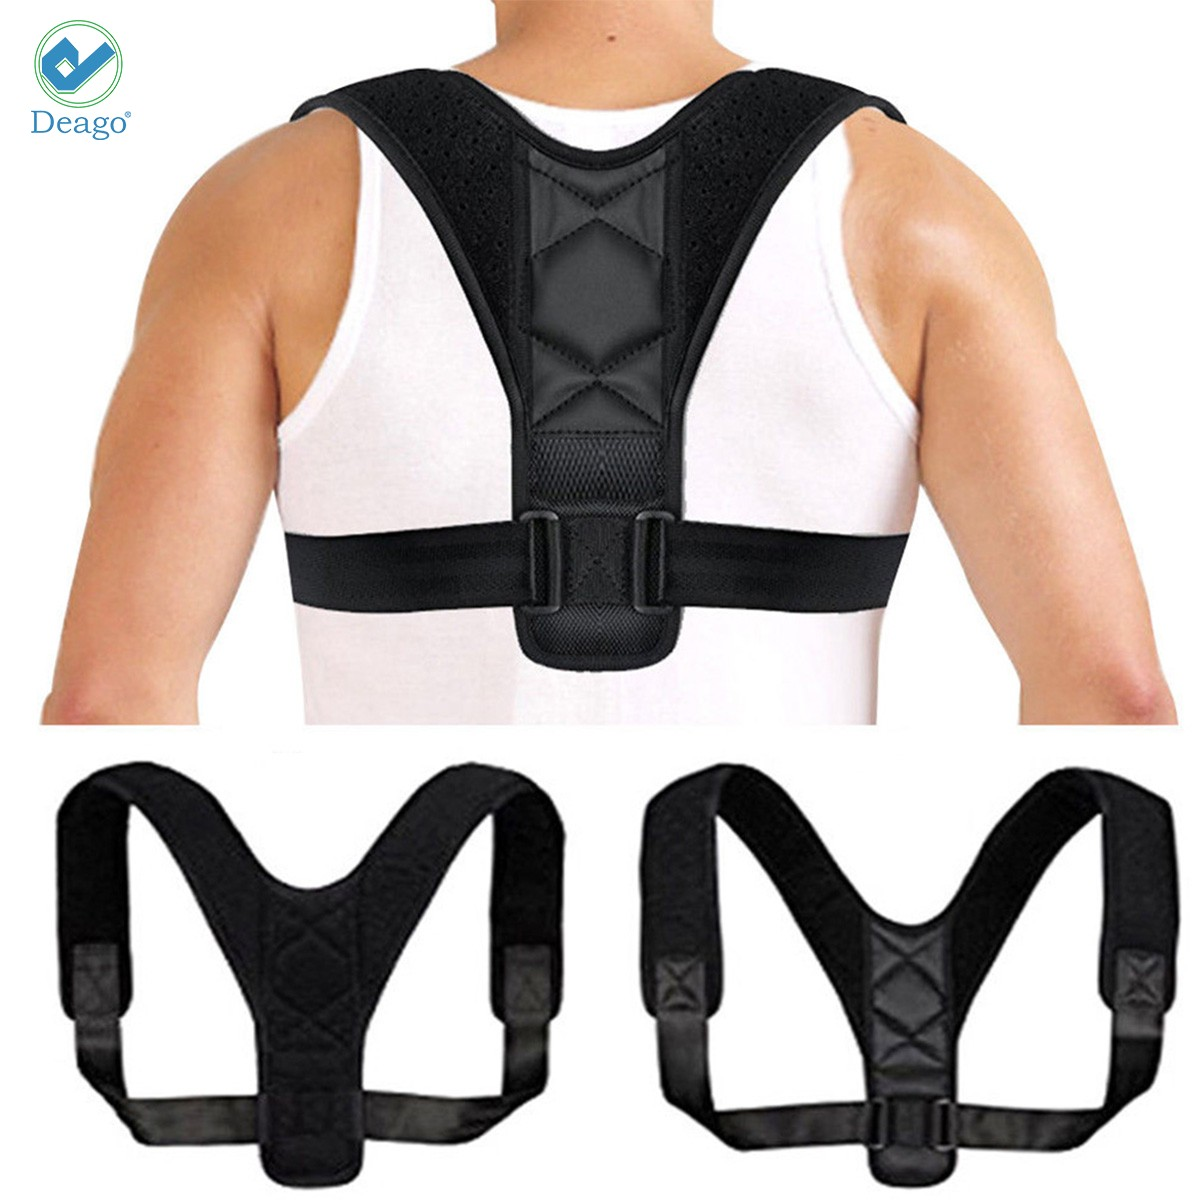 Deago Posture Corrector for Men and Women Upper Back Brace Clavicle Support Device for Thoracic Kyphosis and Shoulder Neck Pain Relief (Size L)